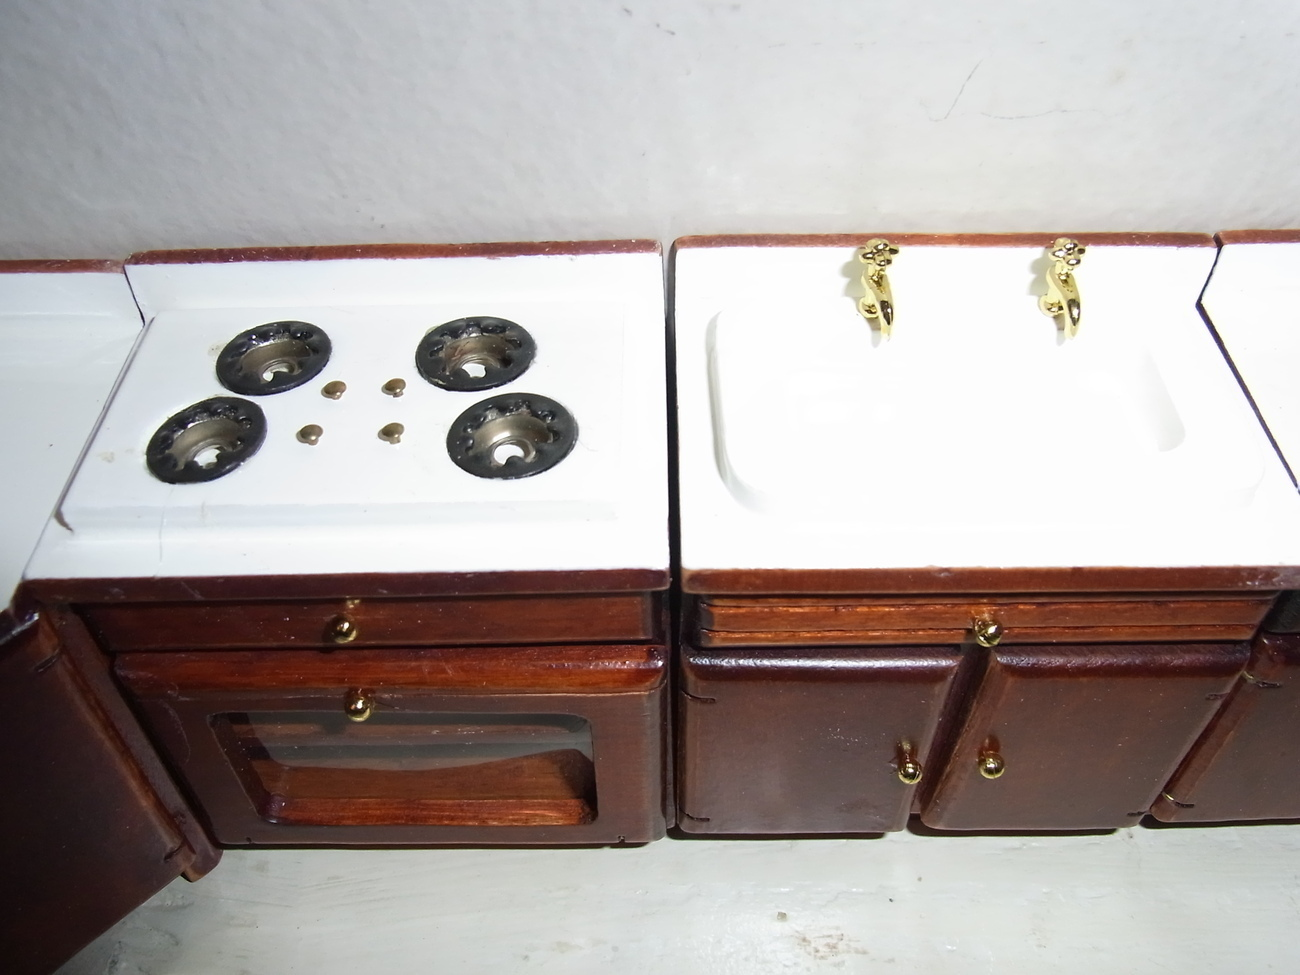 Image 1 of Kitchen Doll Furniture Wood Sink , Stove Etc